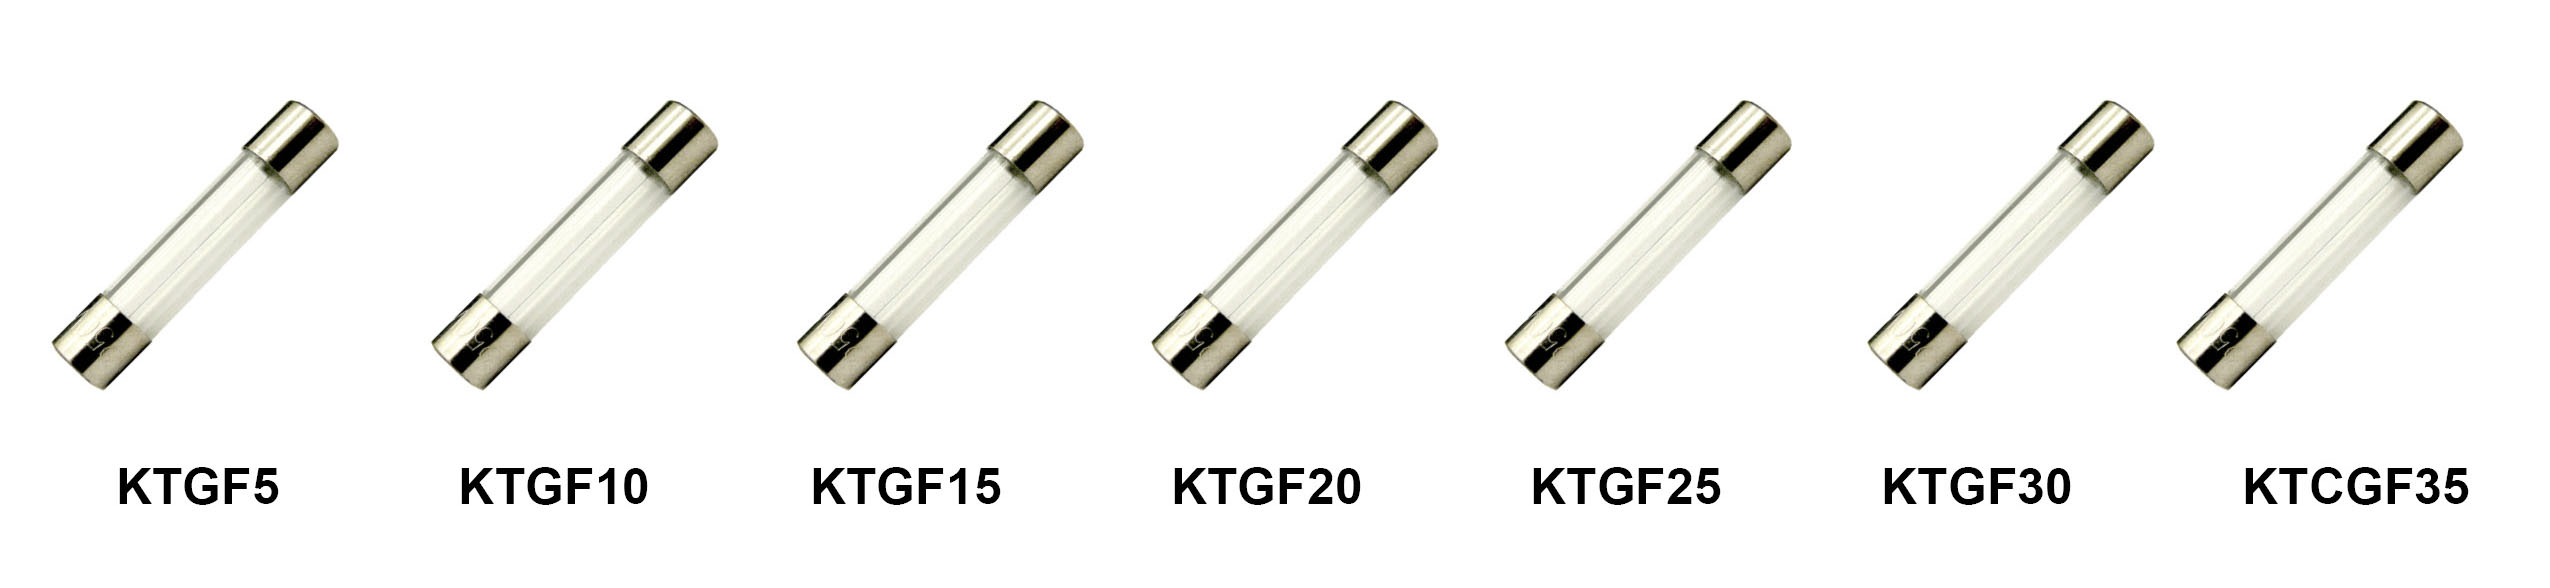 All About Glass Fuses  Ceramic Fuses And Micro  Mini  Standard  Maxi Blade Fuses